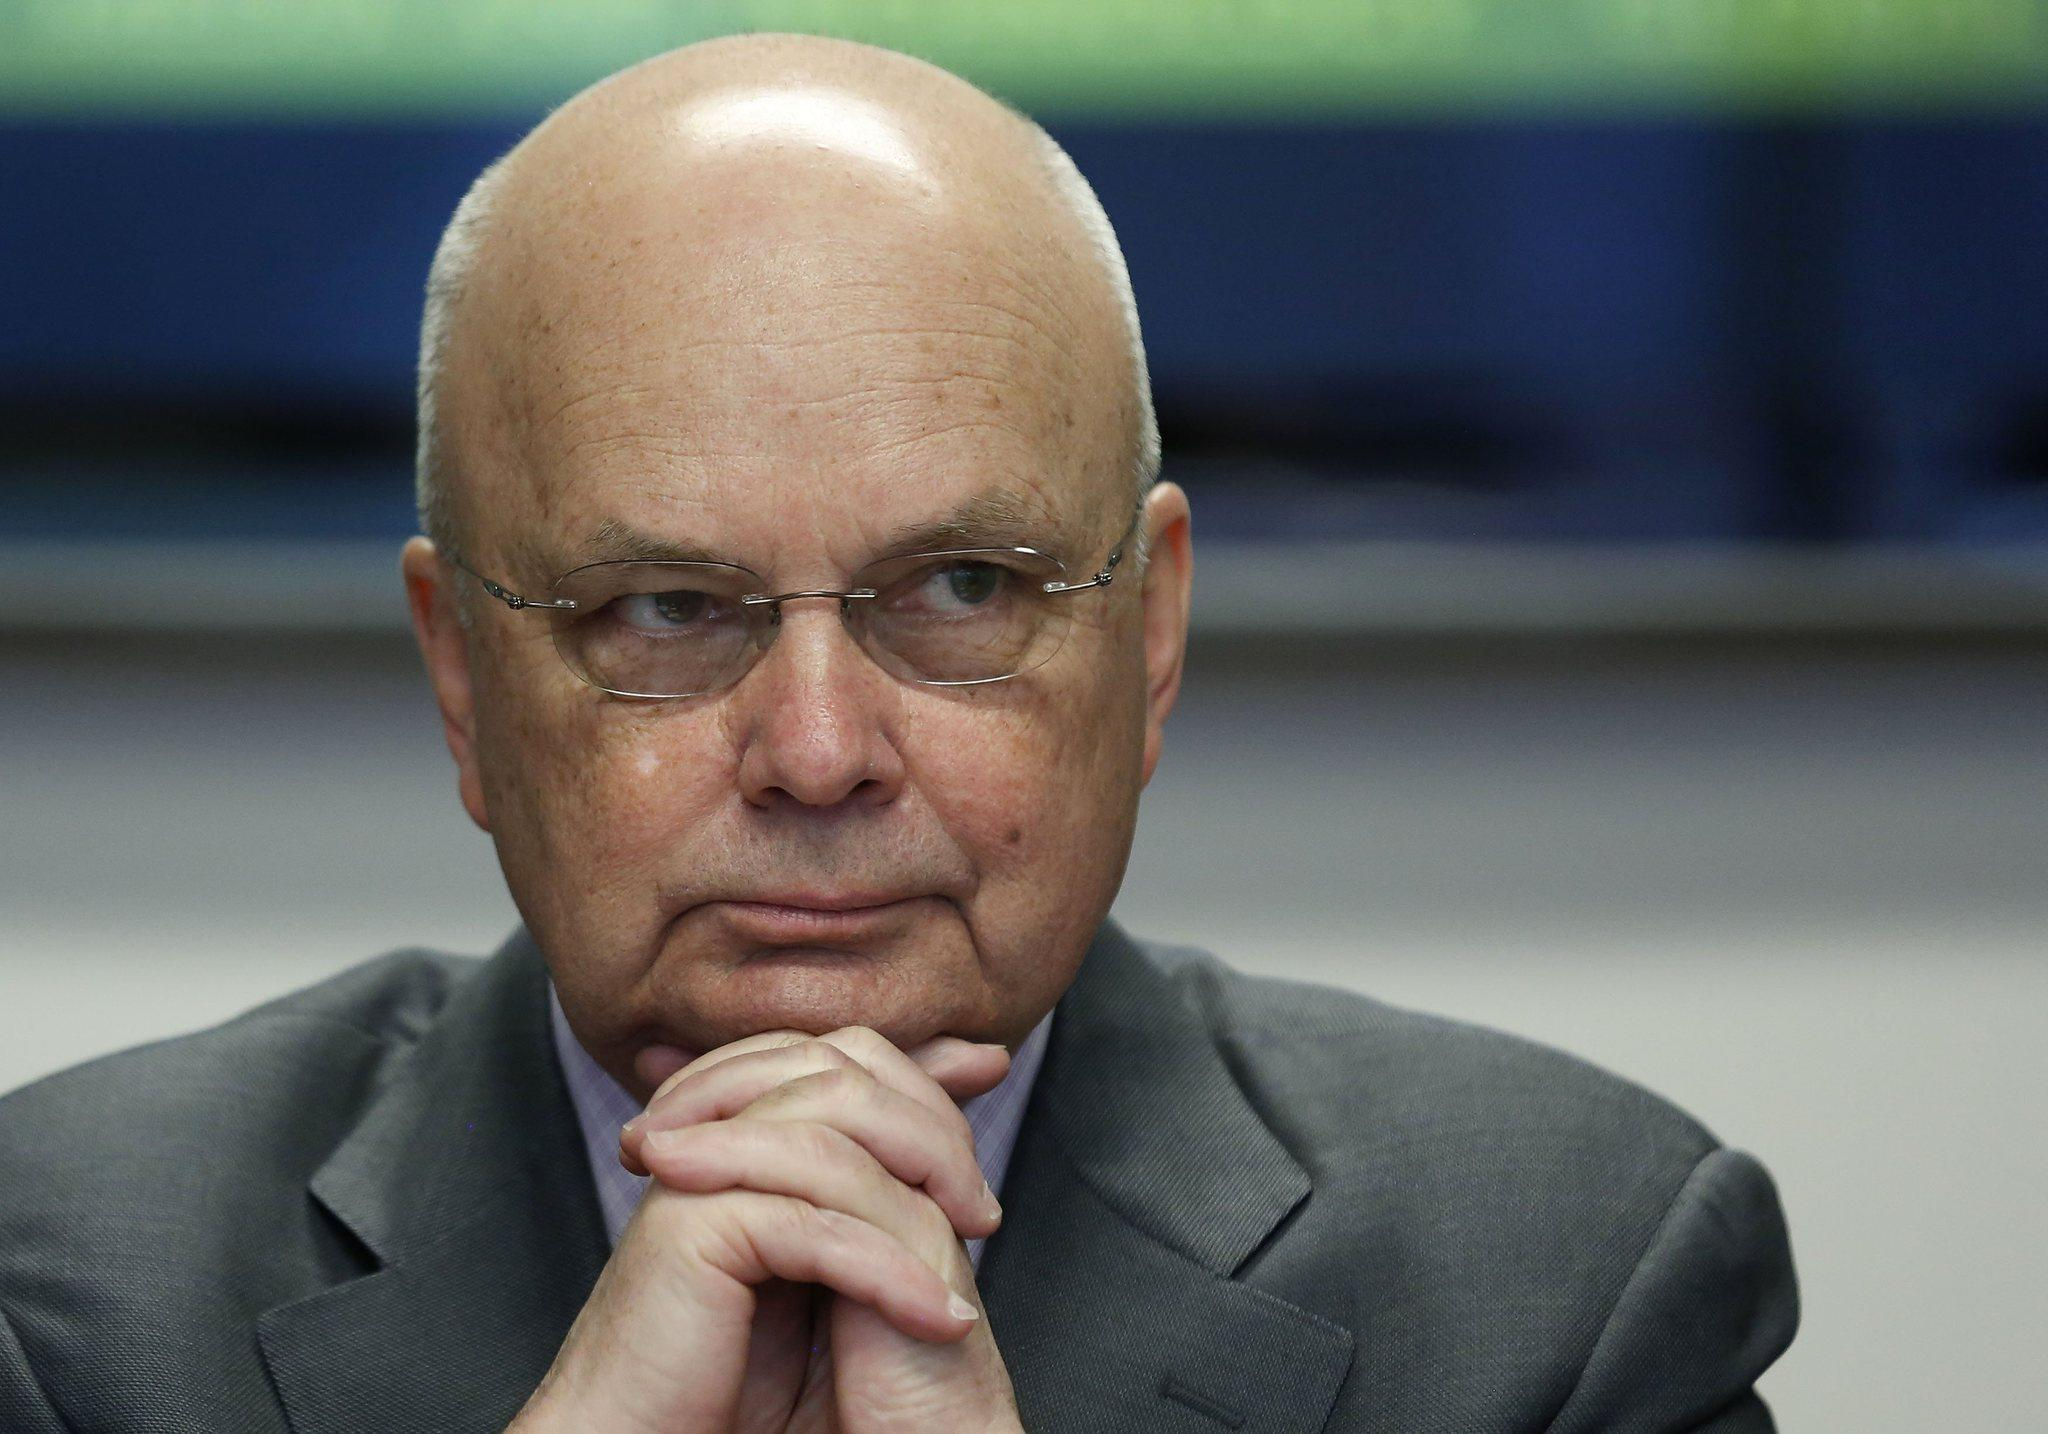 Former National Security Agency (NSA) and Central Intelligence Agency (CIA) Director Michael Hayden listens during a Reuters CyberSecurity Summit in Washington.